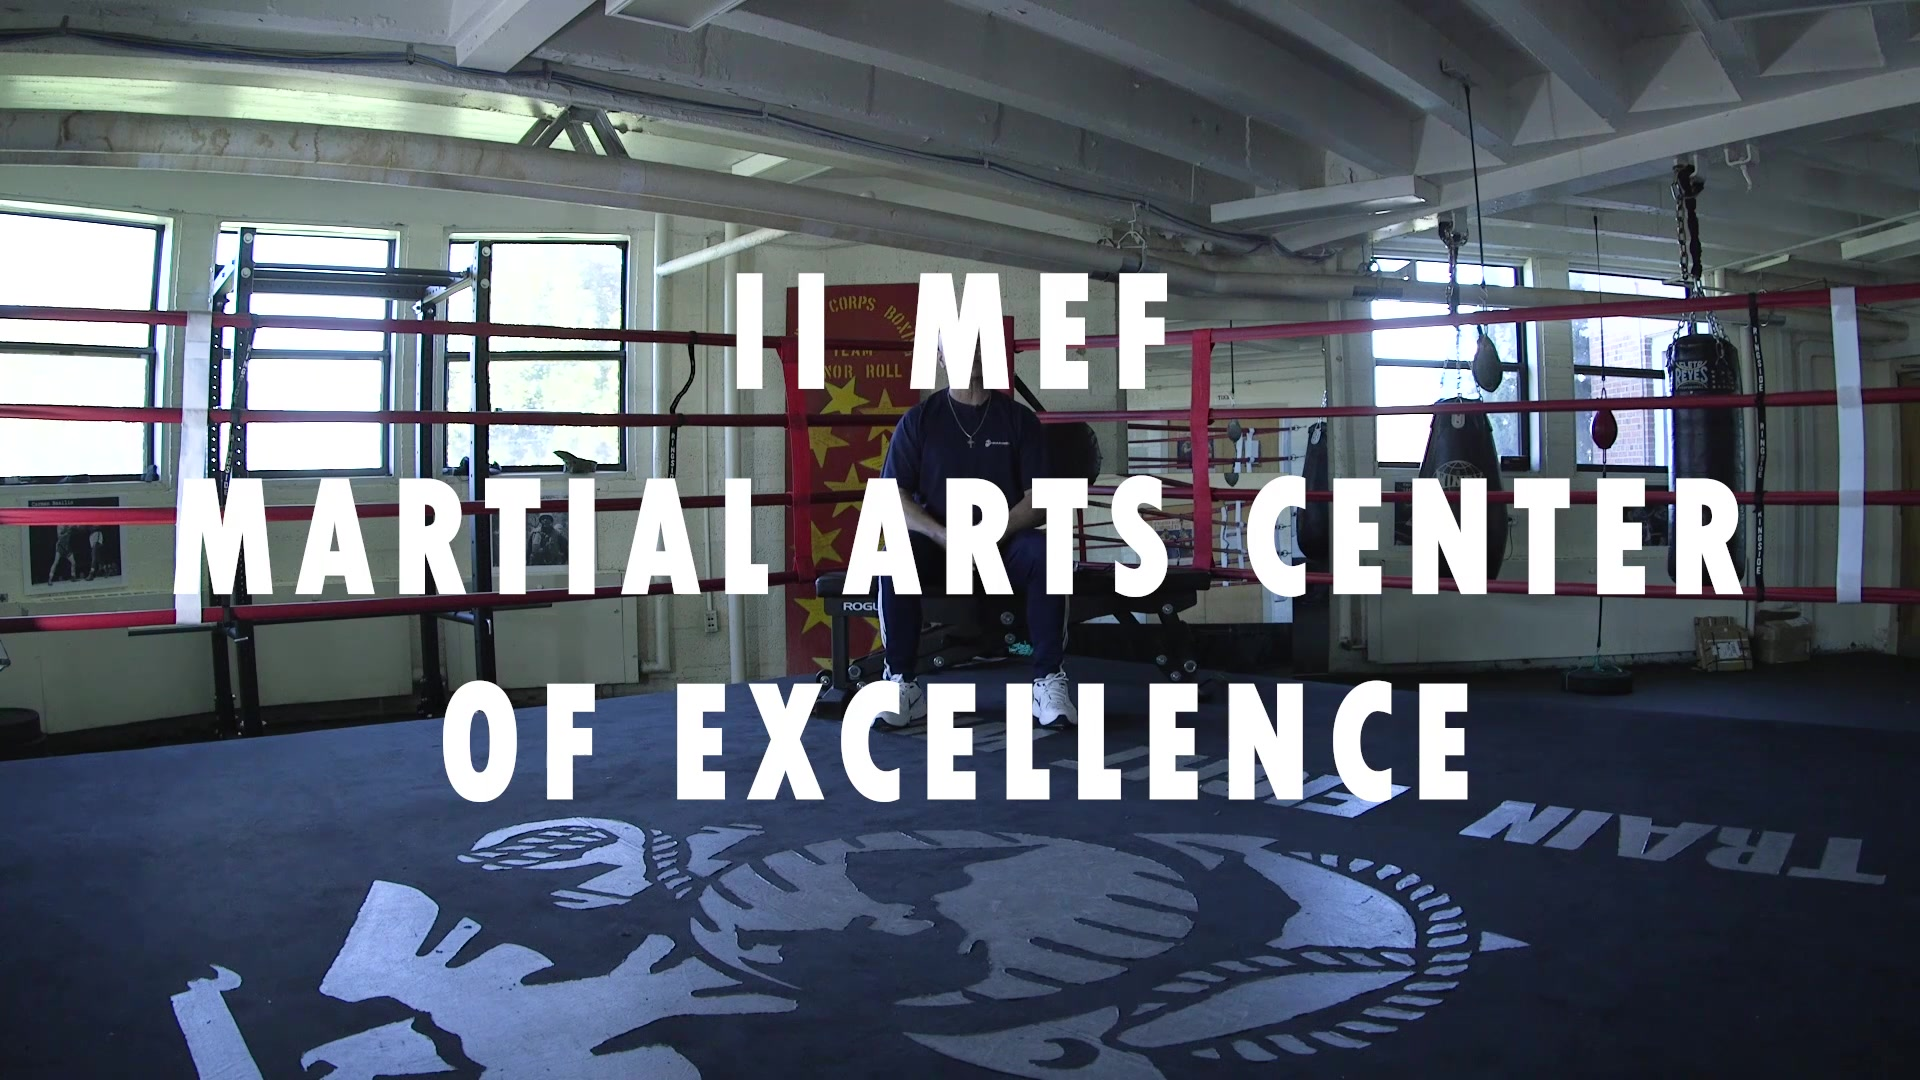 Joe Higgins and Chadrick Wigle, coaches with II Marine Expeditionary Force (MEF) Martial Arts Center of Excellence (MACE), Boxing program, explain the goals of the program and outline their expectations for their Marine boxing team. II MEF MACE is a combative training center for the Marines and Sailors stationed at Camp Lejeune. The Marines of II MEF come from all walks of life and each bring their own unique perspectives and talents to the boxing team; through focused discipline, high morals, mental and physical toughness, they prepare for victory. (U.S. Marine Corps video by Sgt. Isaac Cantrell)